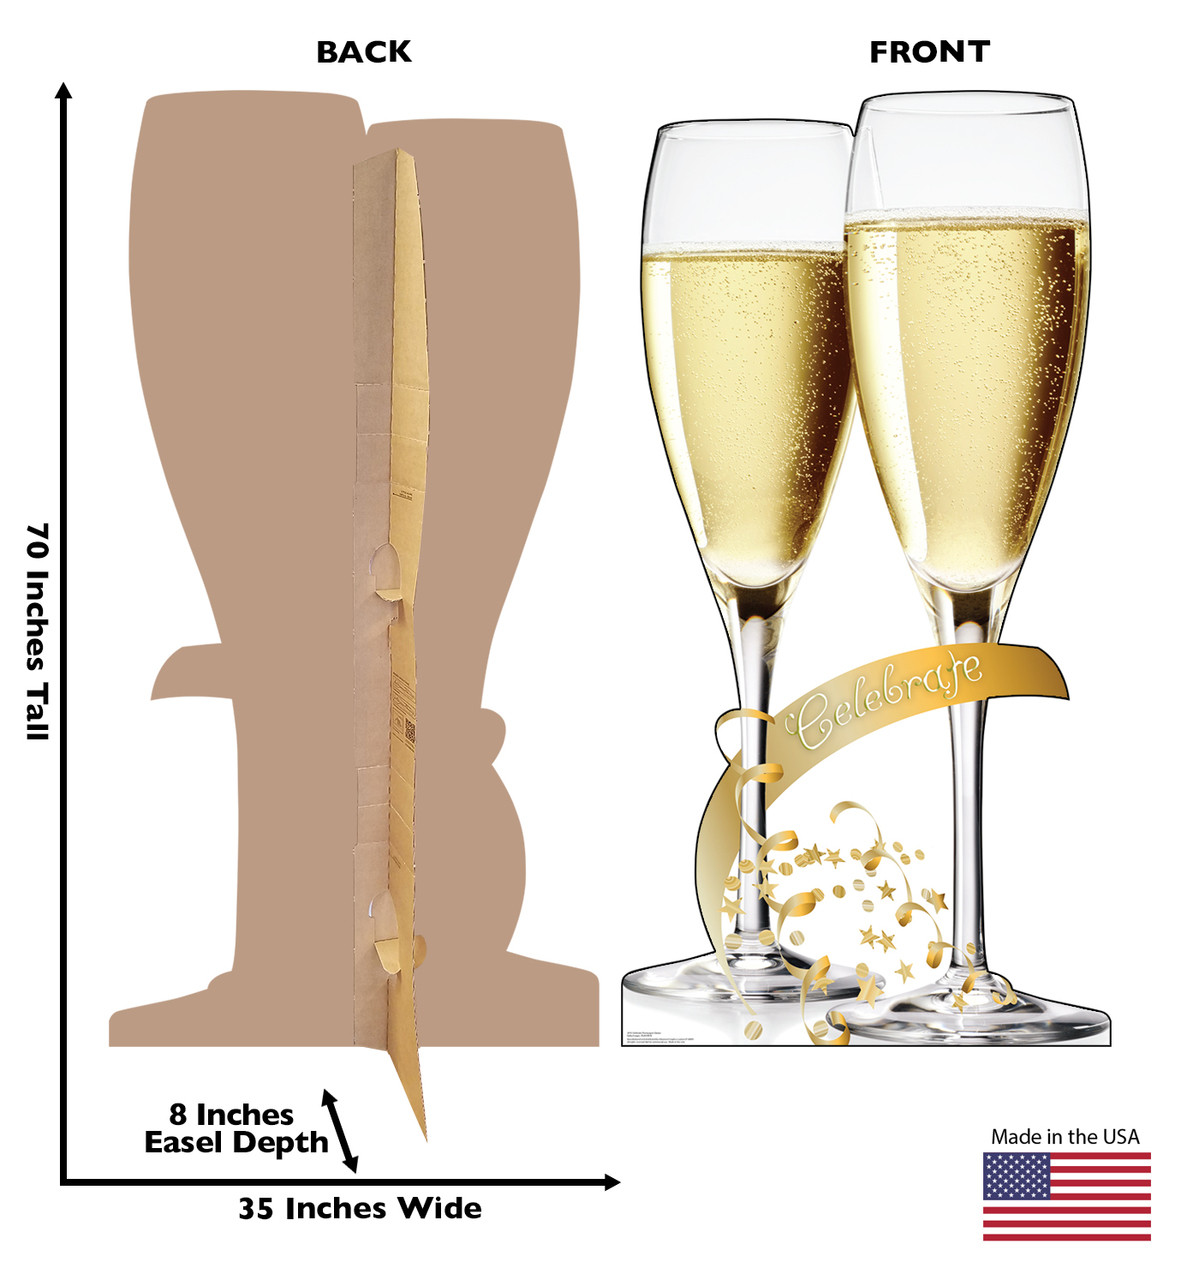 Life-size cardboard standee of Celebrate Champagne Glasses. View of back and front of standee with dimensions.